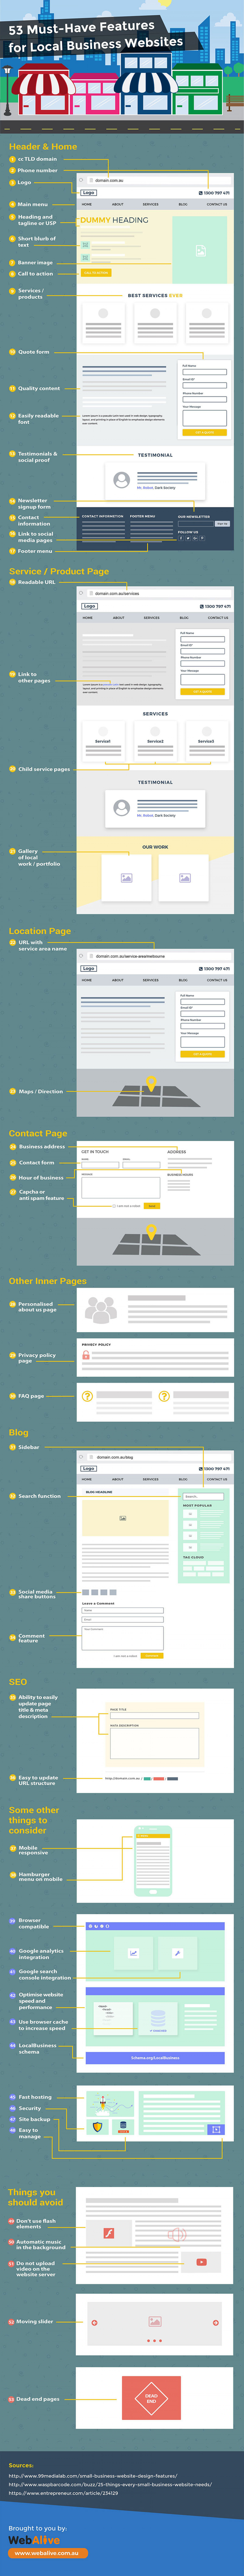 53 Essential Features of Every Good Local Business Website  Infographic